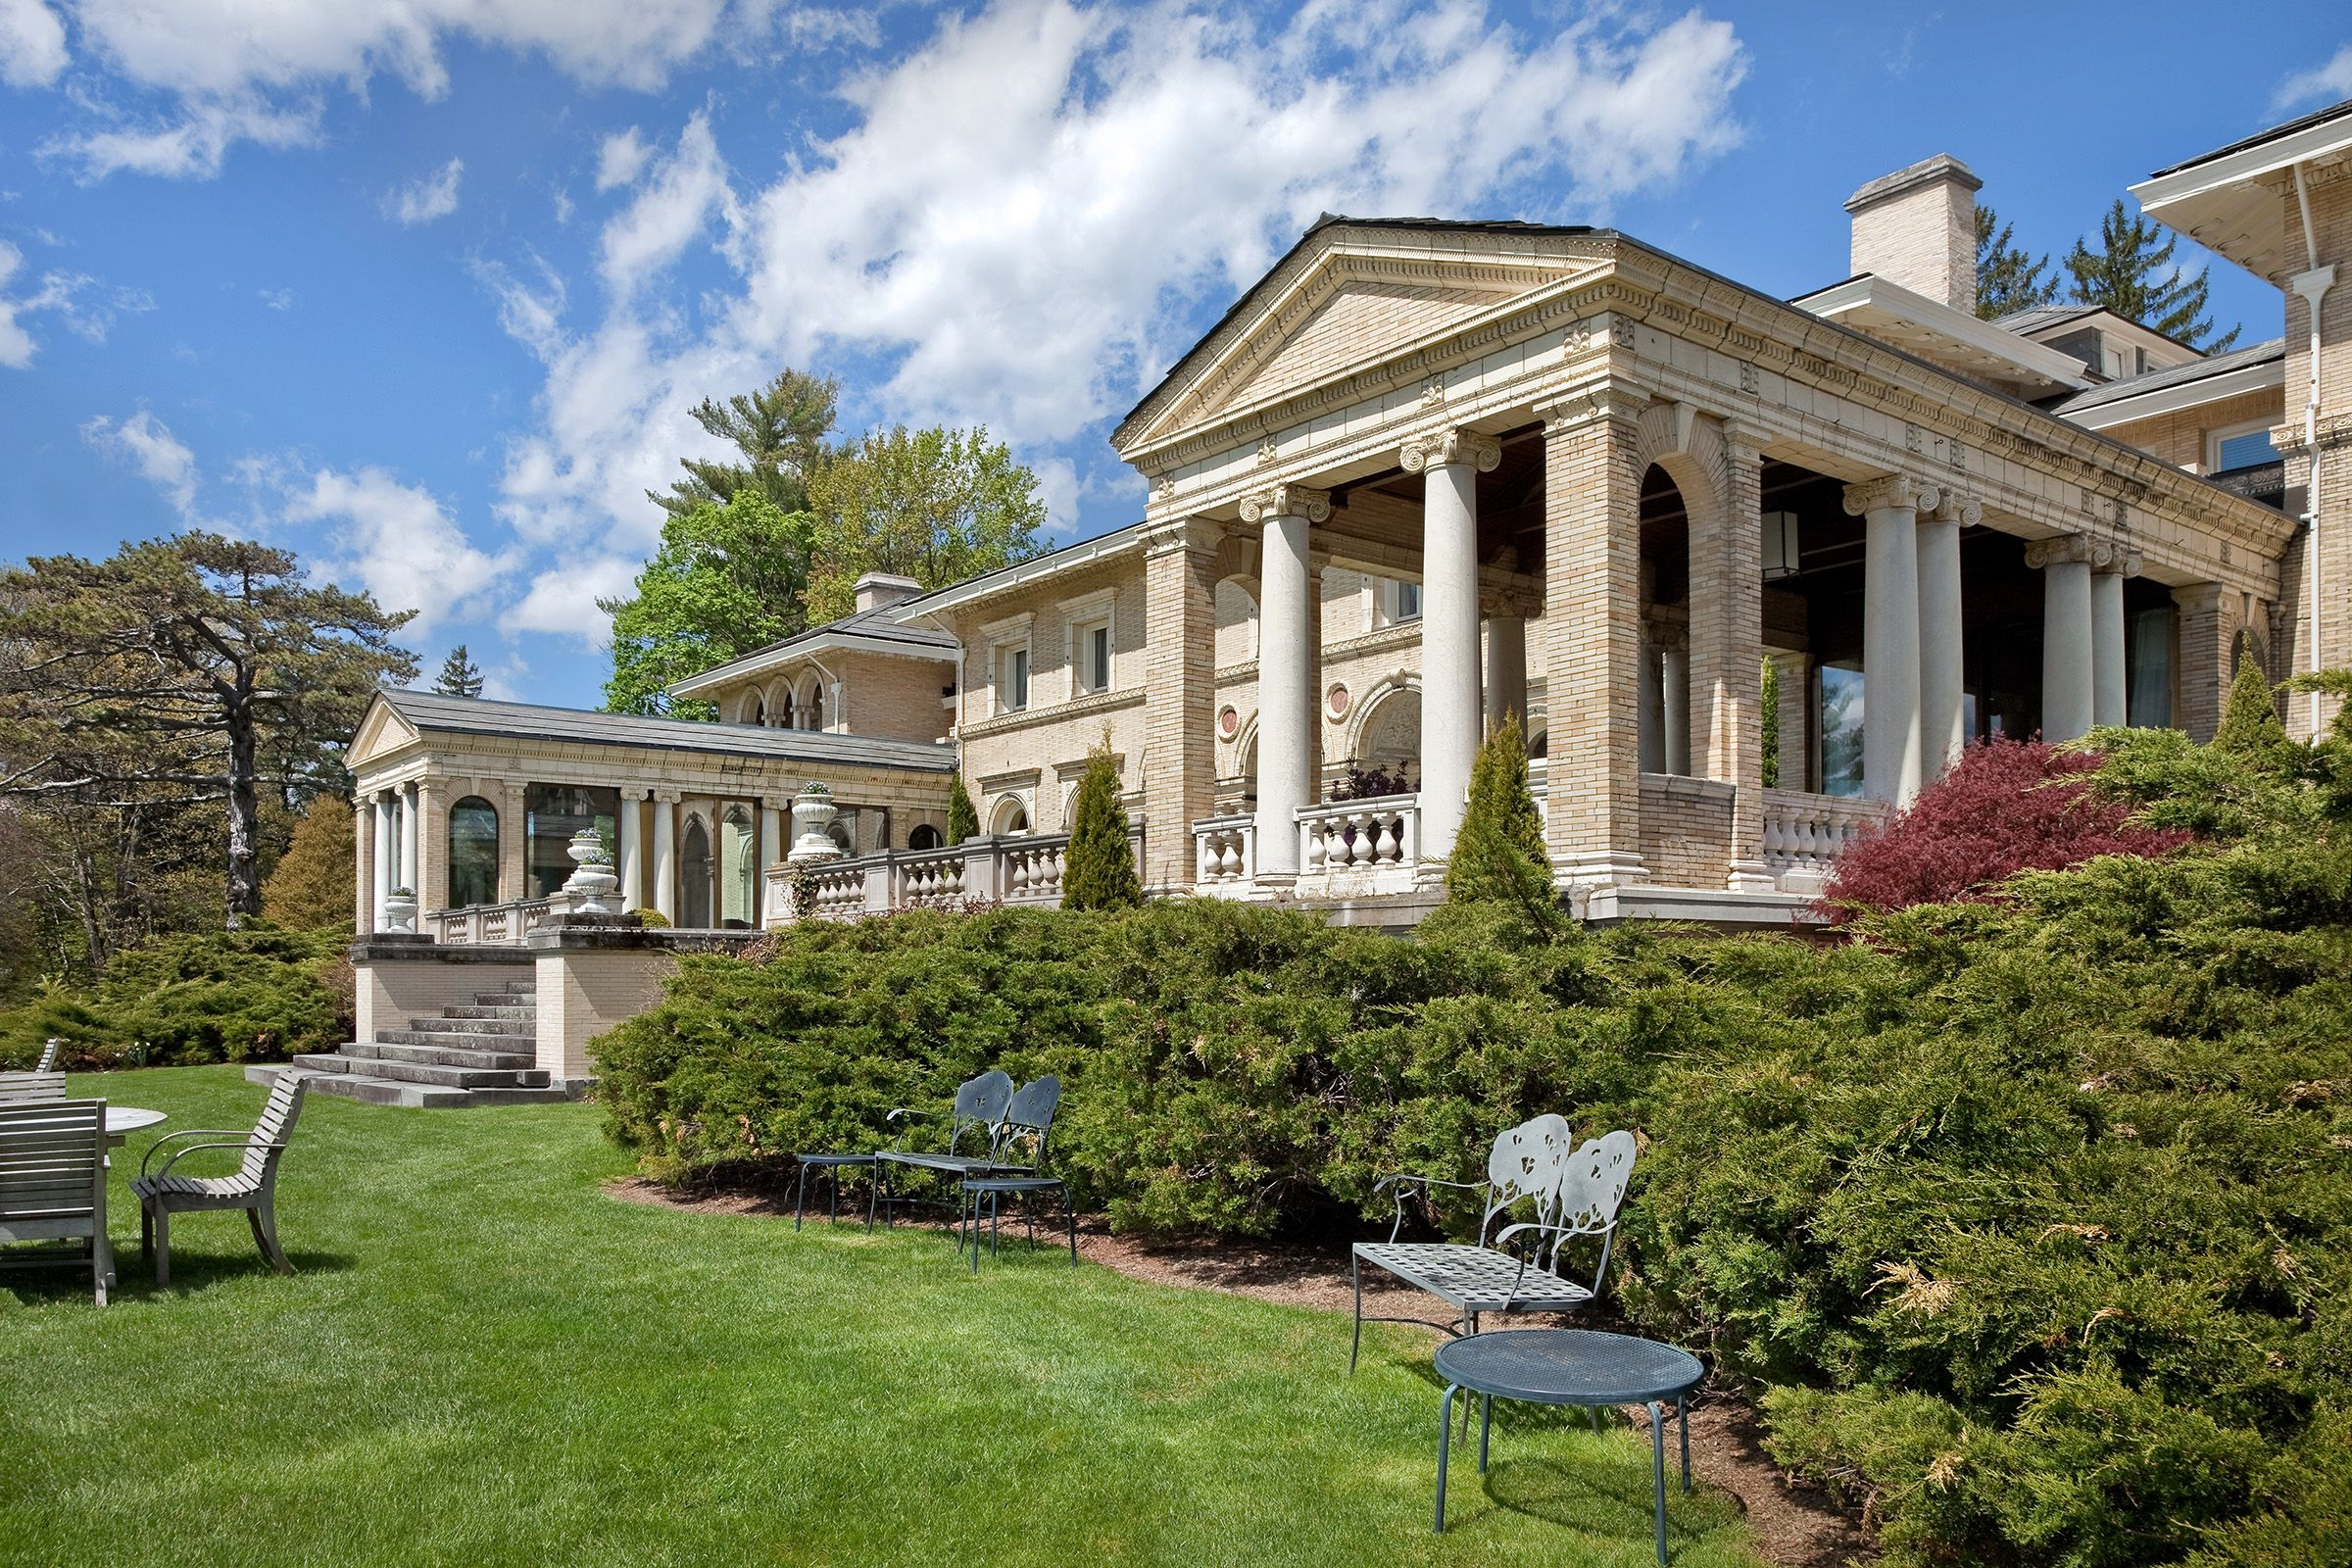 Wheatleigh Amazing Five Diamond Leading Hotels Of The World Property And Restaurant In Lenox Ma Berkshires